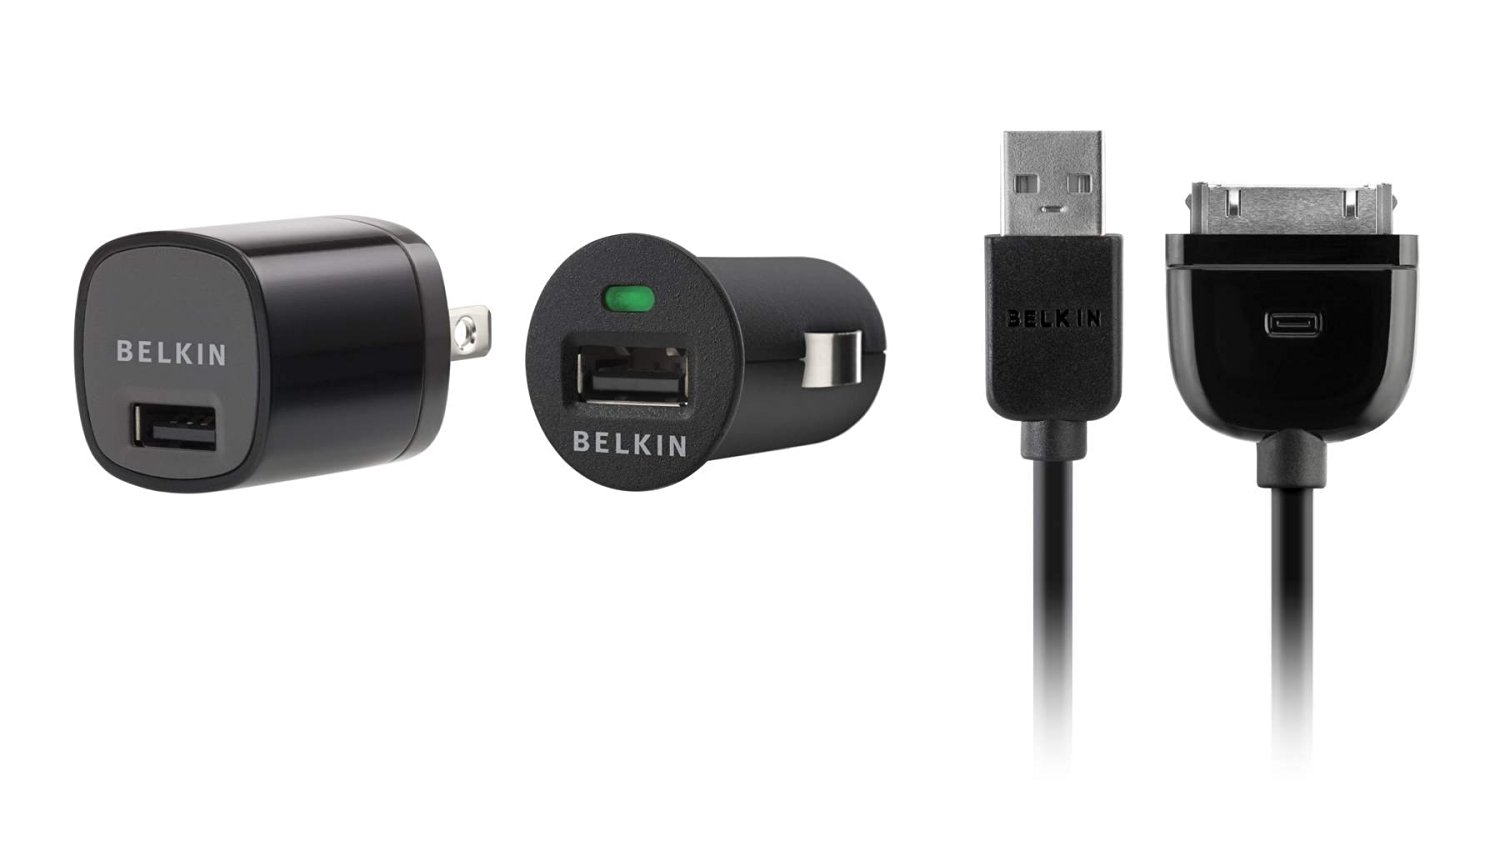 Belkin USB Charging Kit with Wall Charger and Car Charger for Apple iPhone (Black)